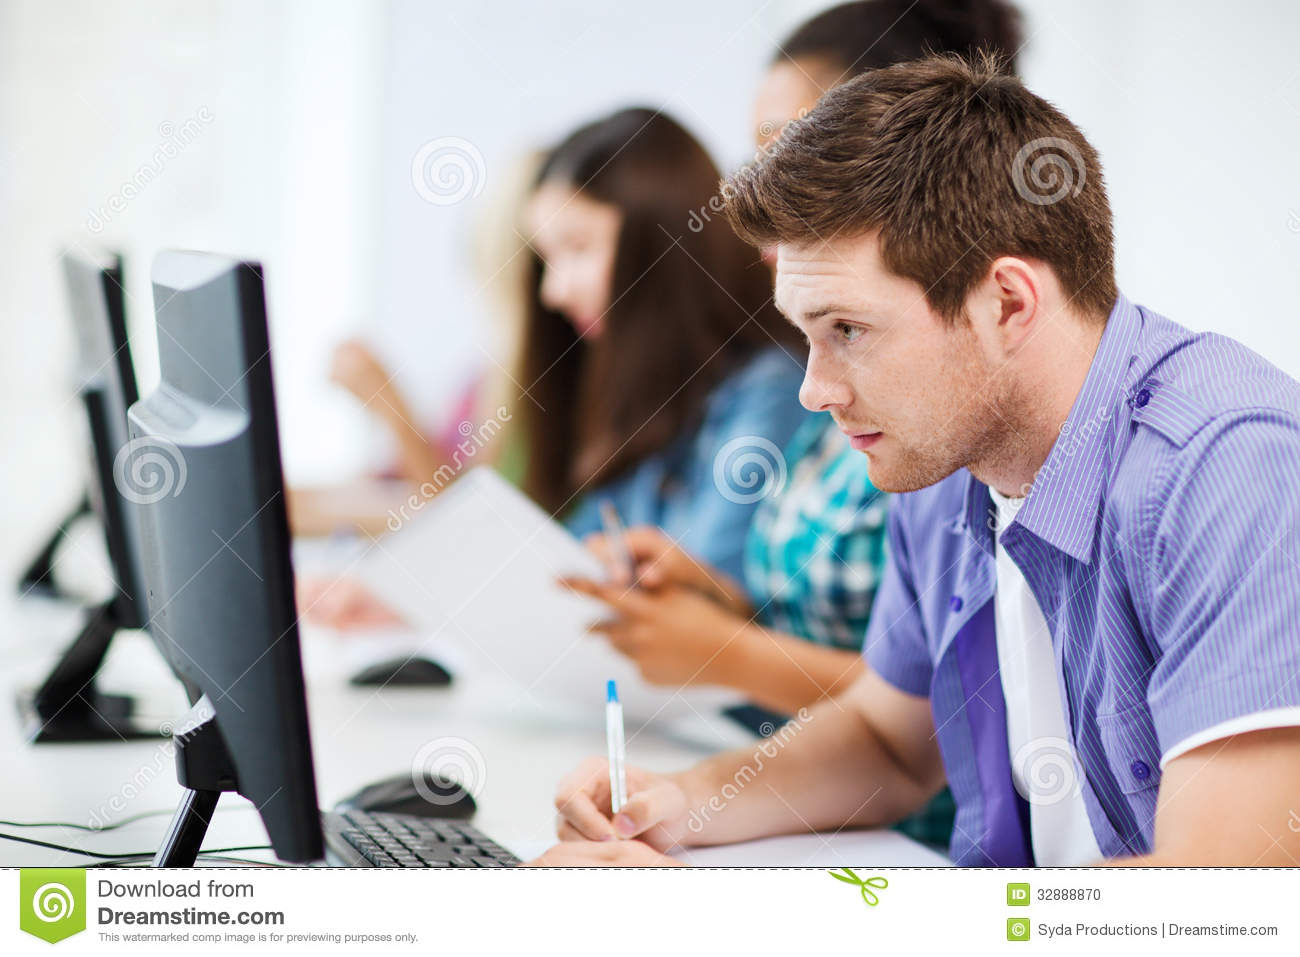 Student With Computer Studying At School Stock Photo ...